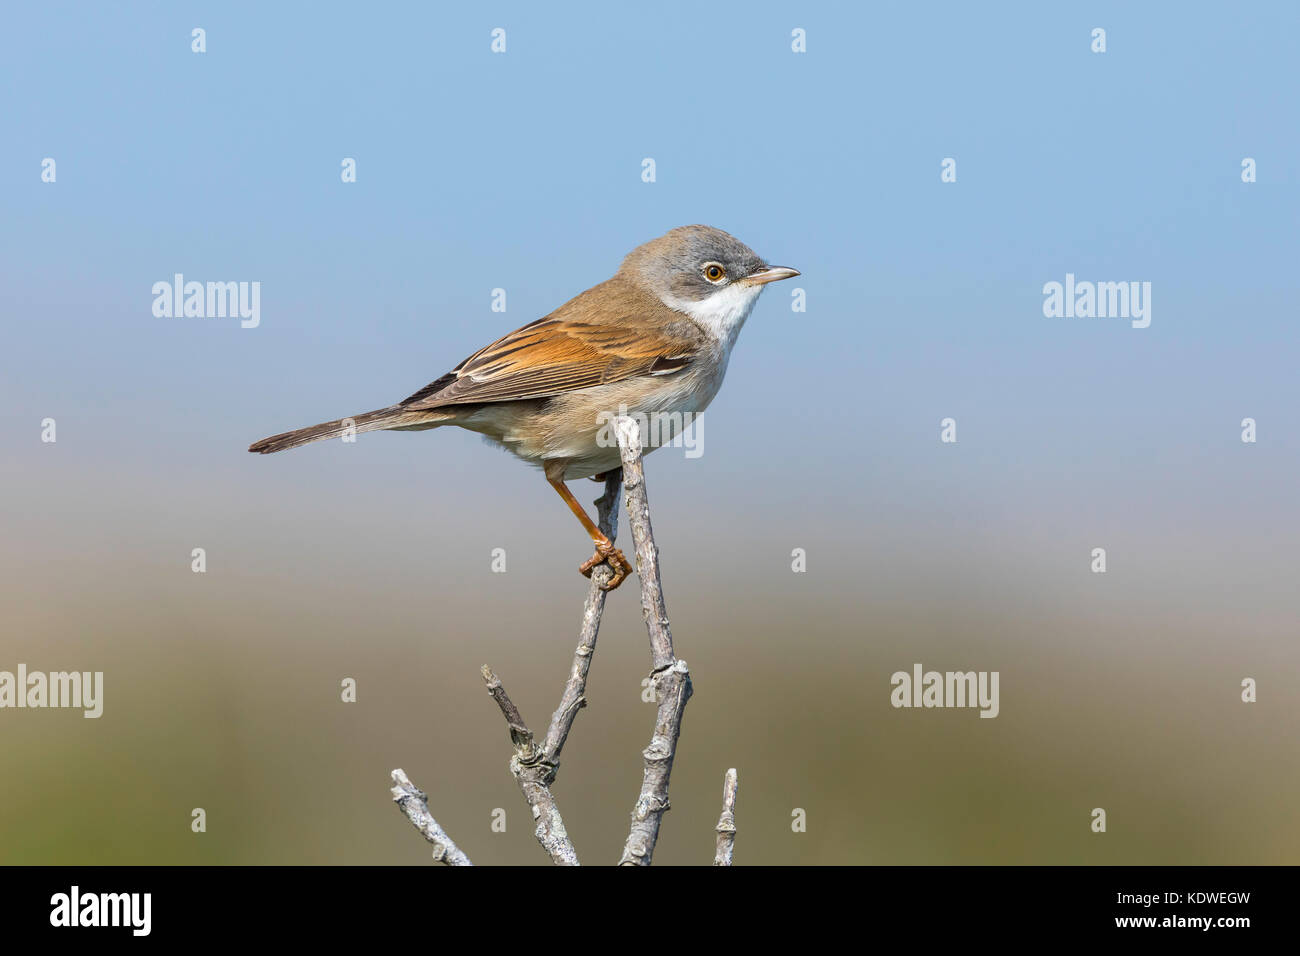 Whitethroat perched on a twig in Cornwall with a blue sky background. - Stock Image